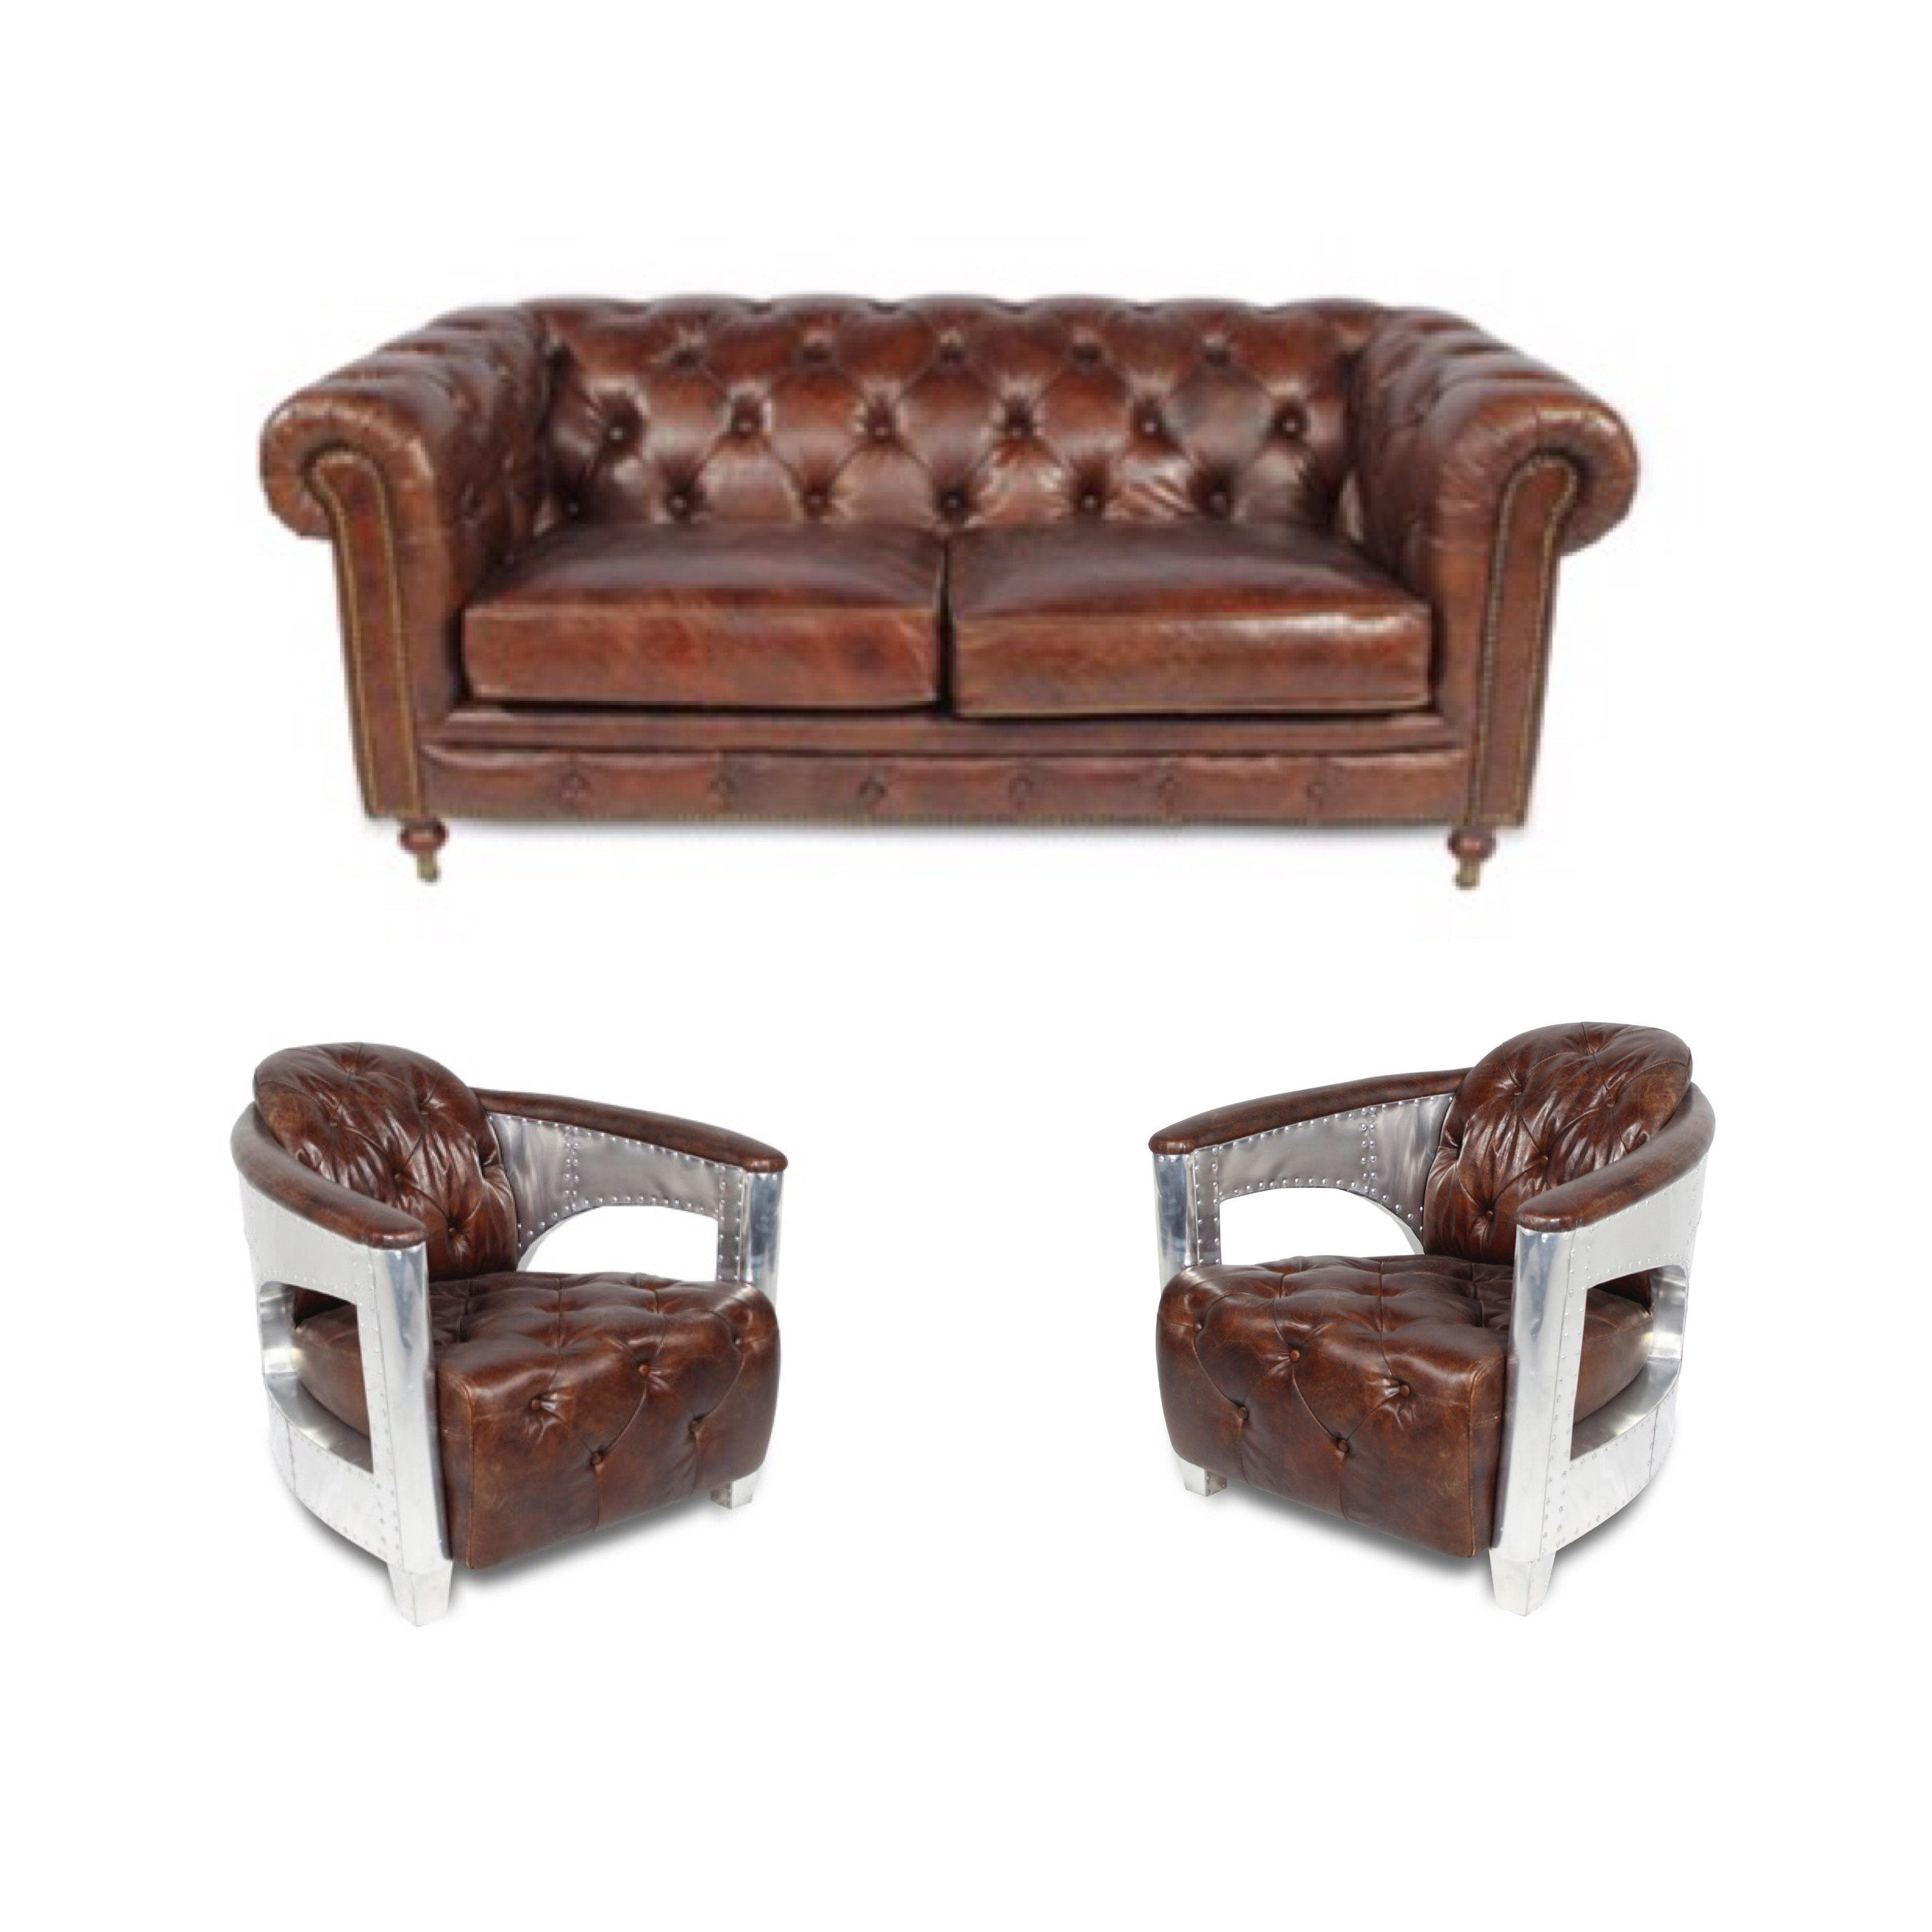 Fauteuil Chesterfield Origine Ensemble Chesterfield En Cuir Marron Vintage Capitonné Deux